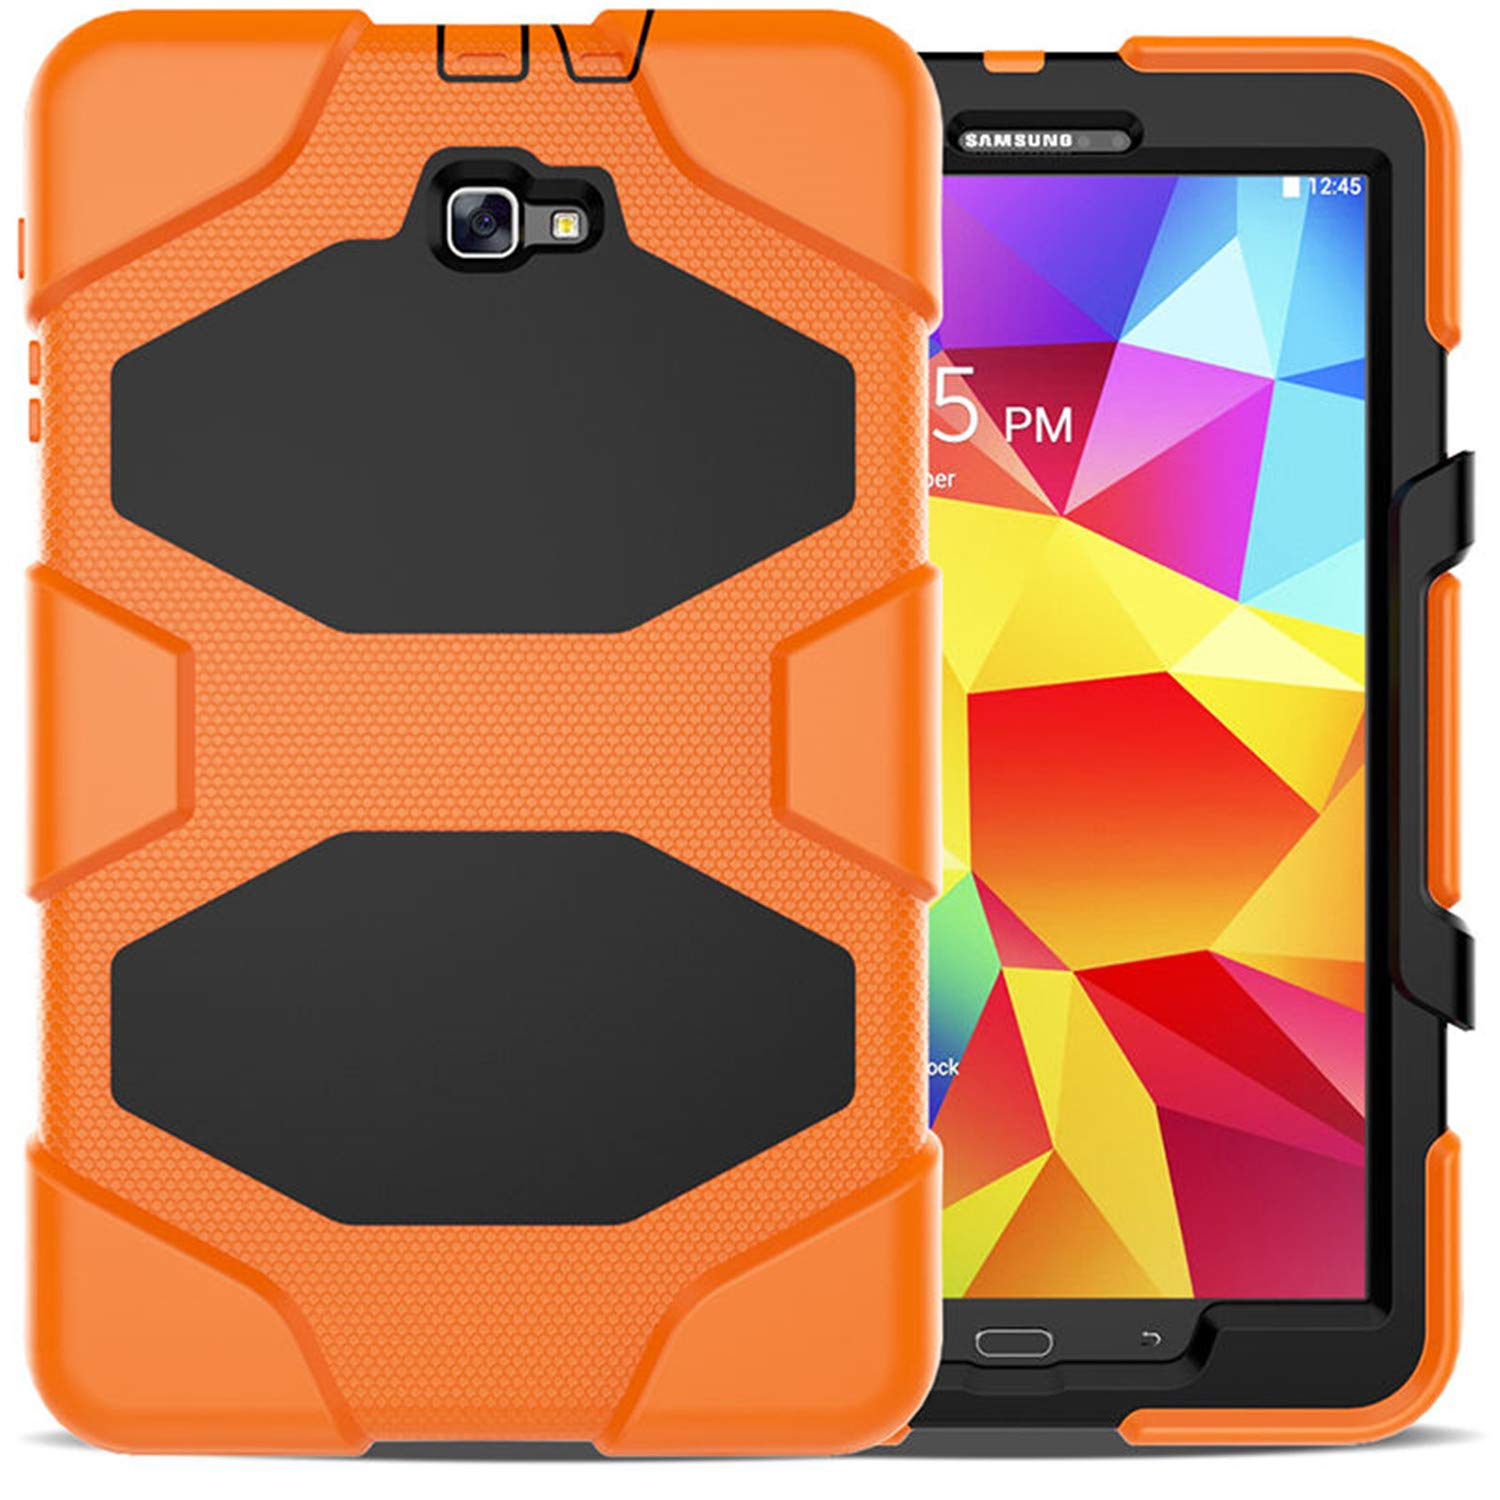 Amazon.com: Case Galaxy Tab A A6 10.1 Case Cover Tablet ...